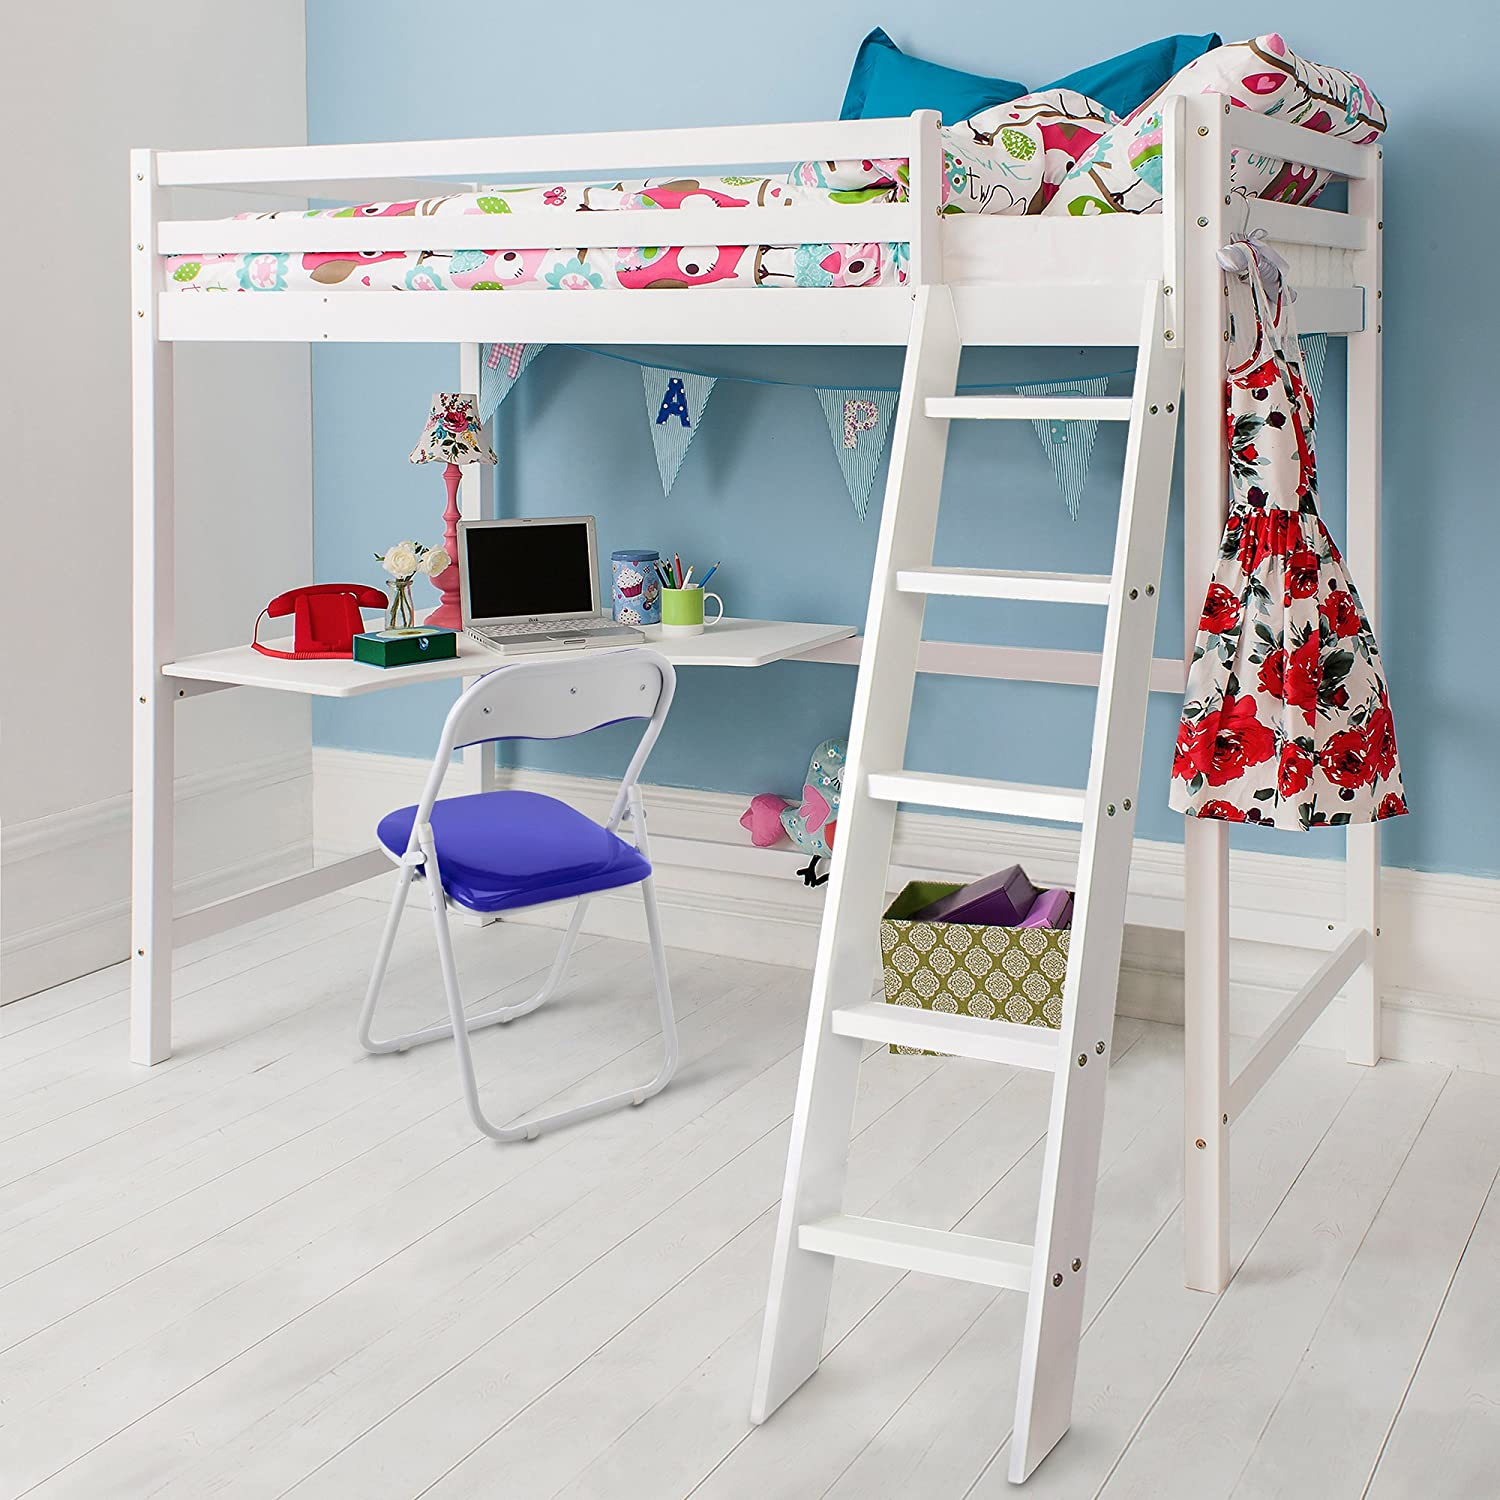 Medium image of cabin bed high sleeeper with desk in white  bunk bed   high sleeper w